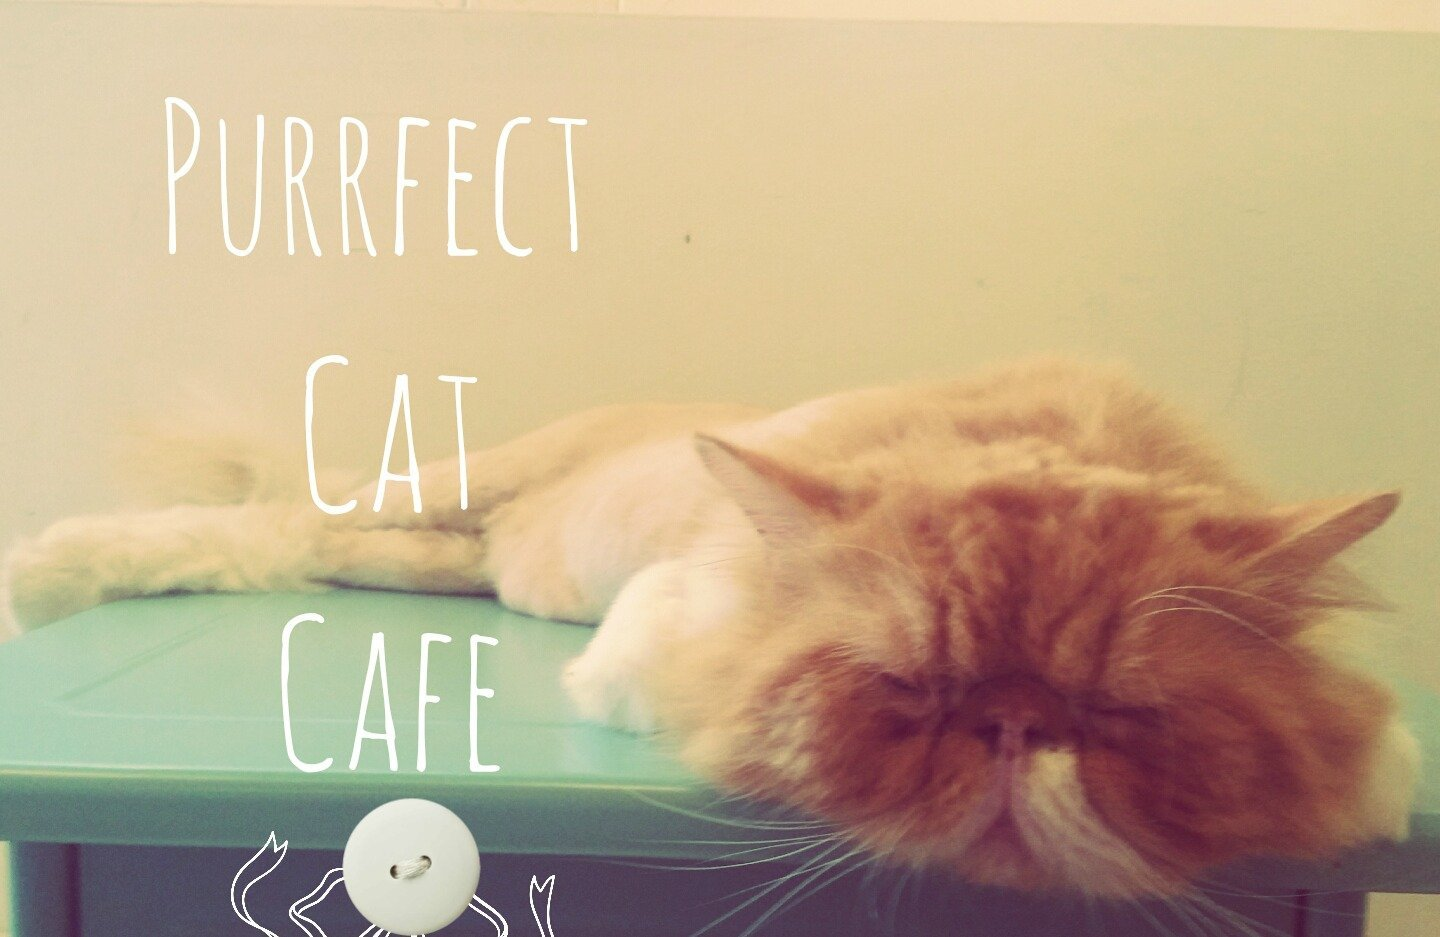 Purrfect Cat Cafe, Penang